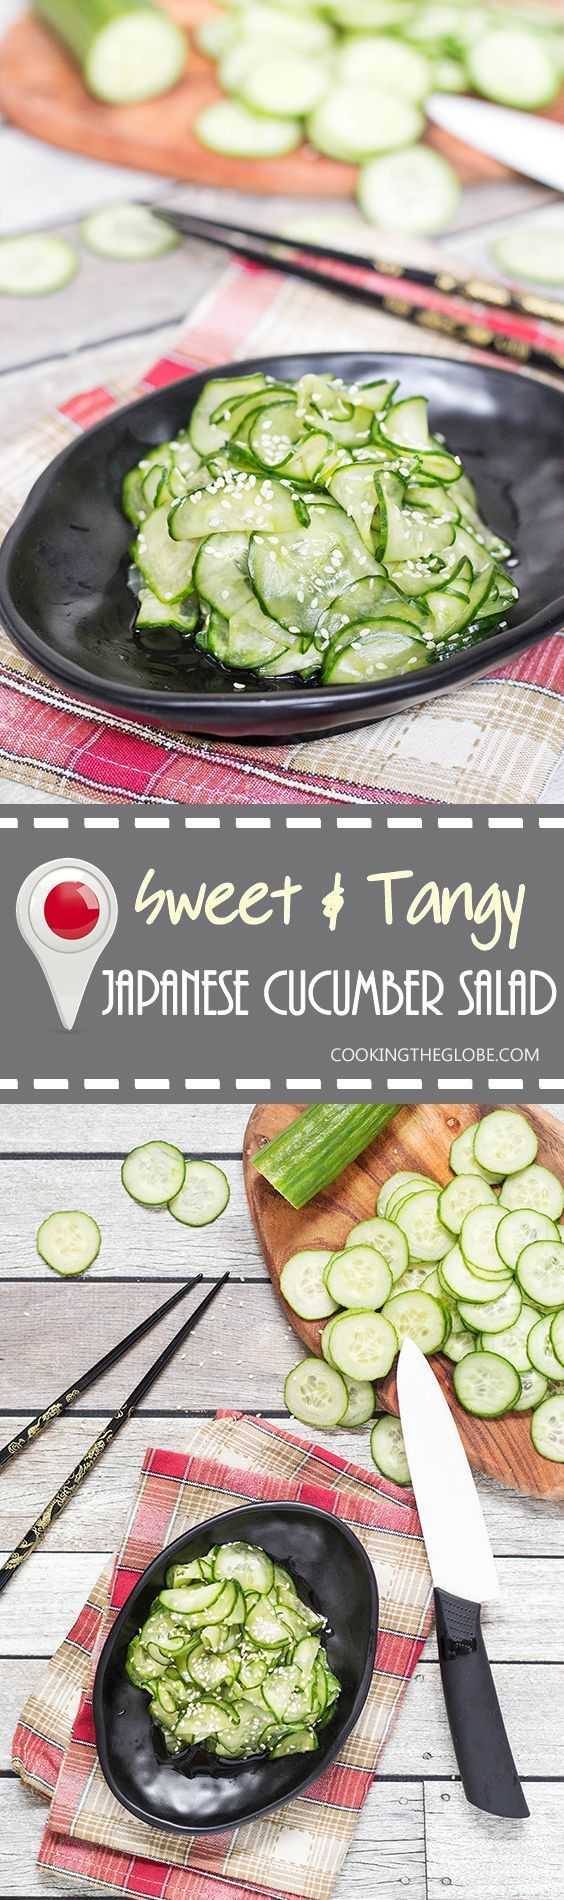 This beautiful cucumber salad coming from Japan is sweet, tangy, and crunchy. Can be served as an appetizer or a side dish!